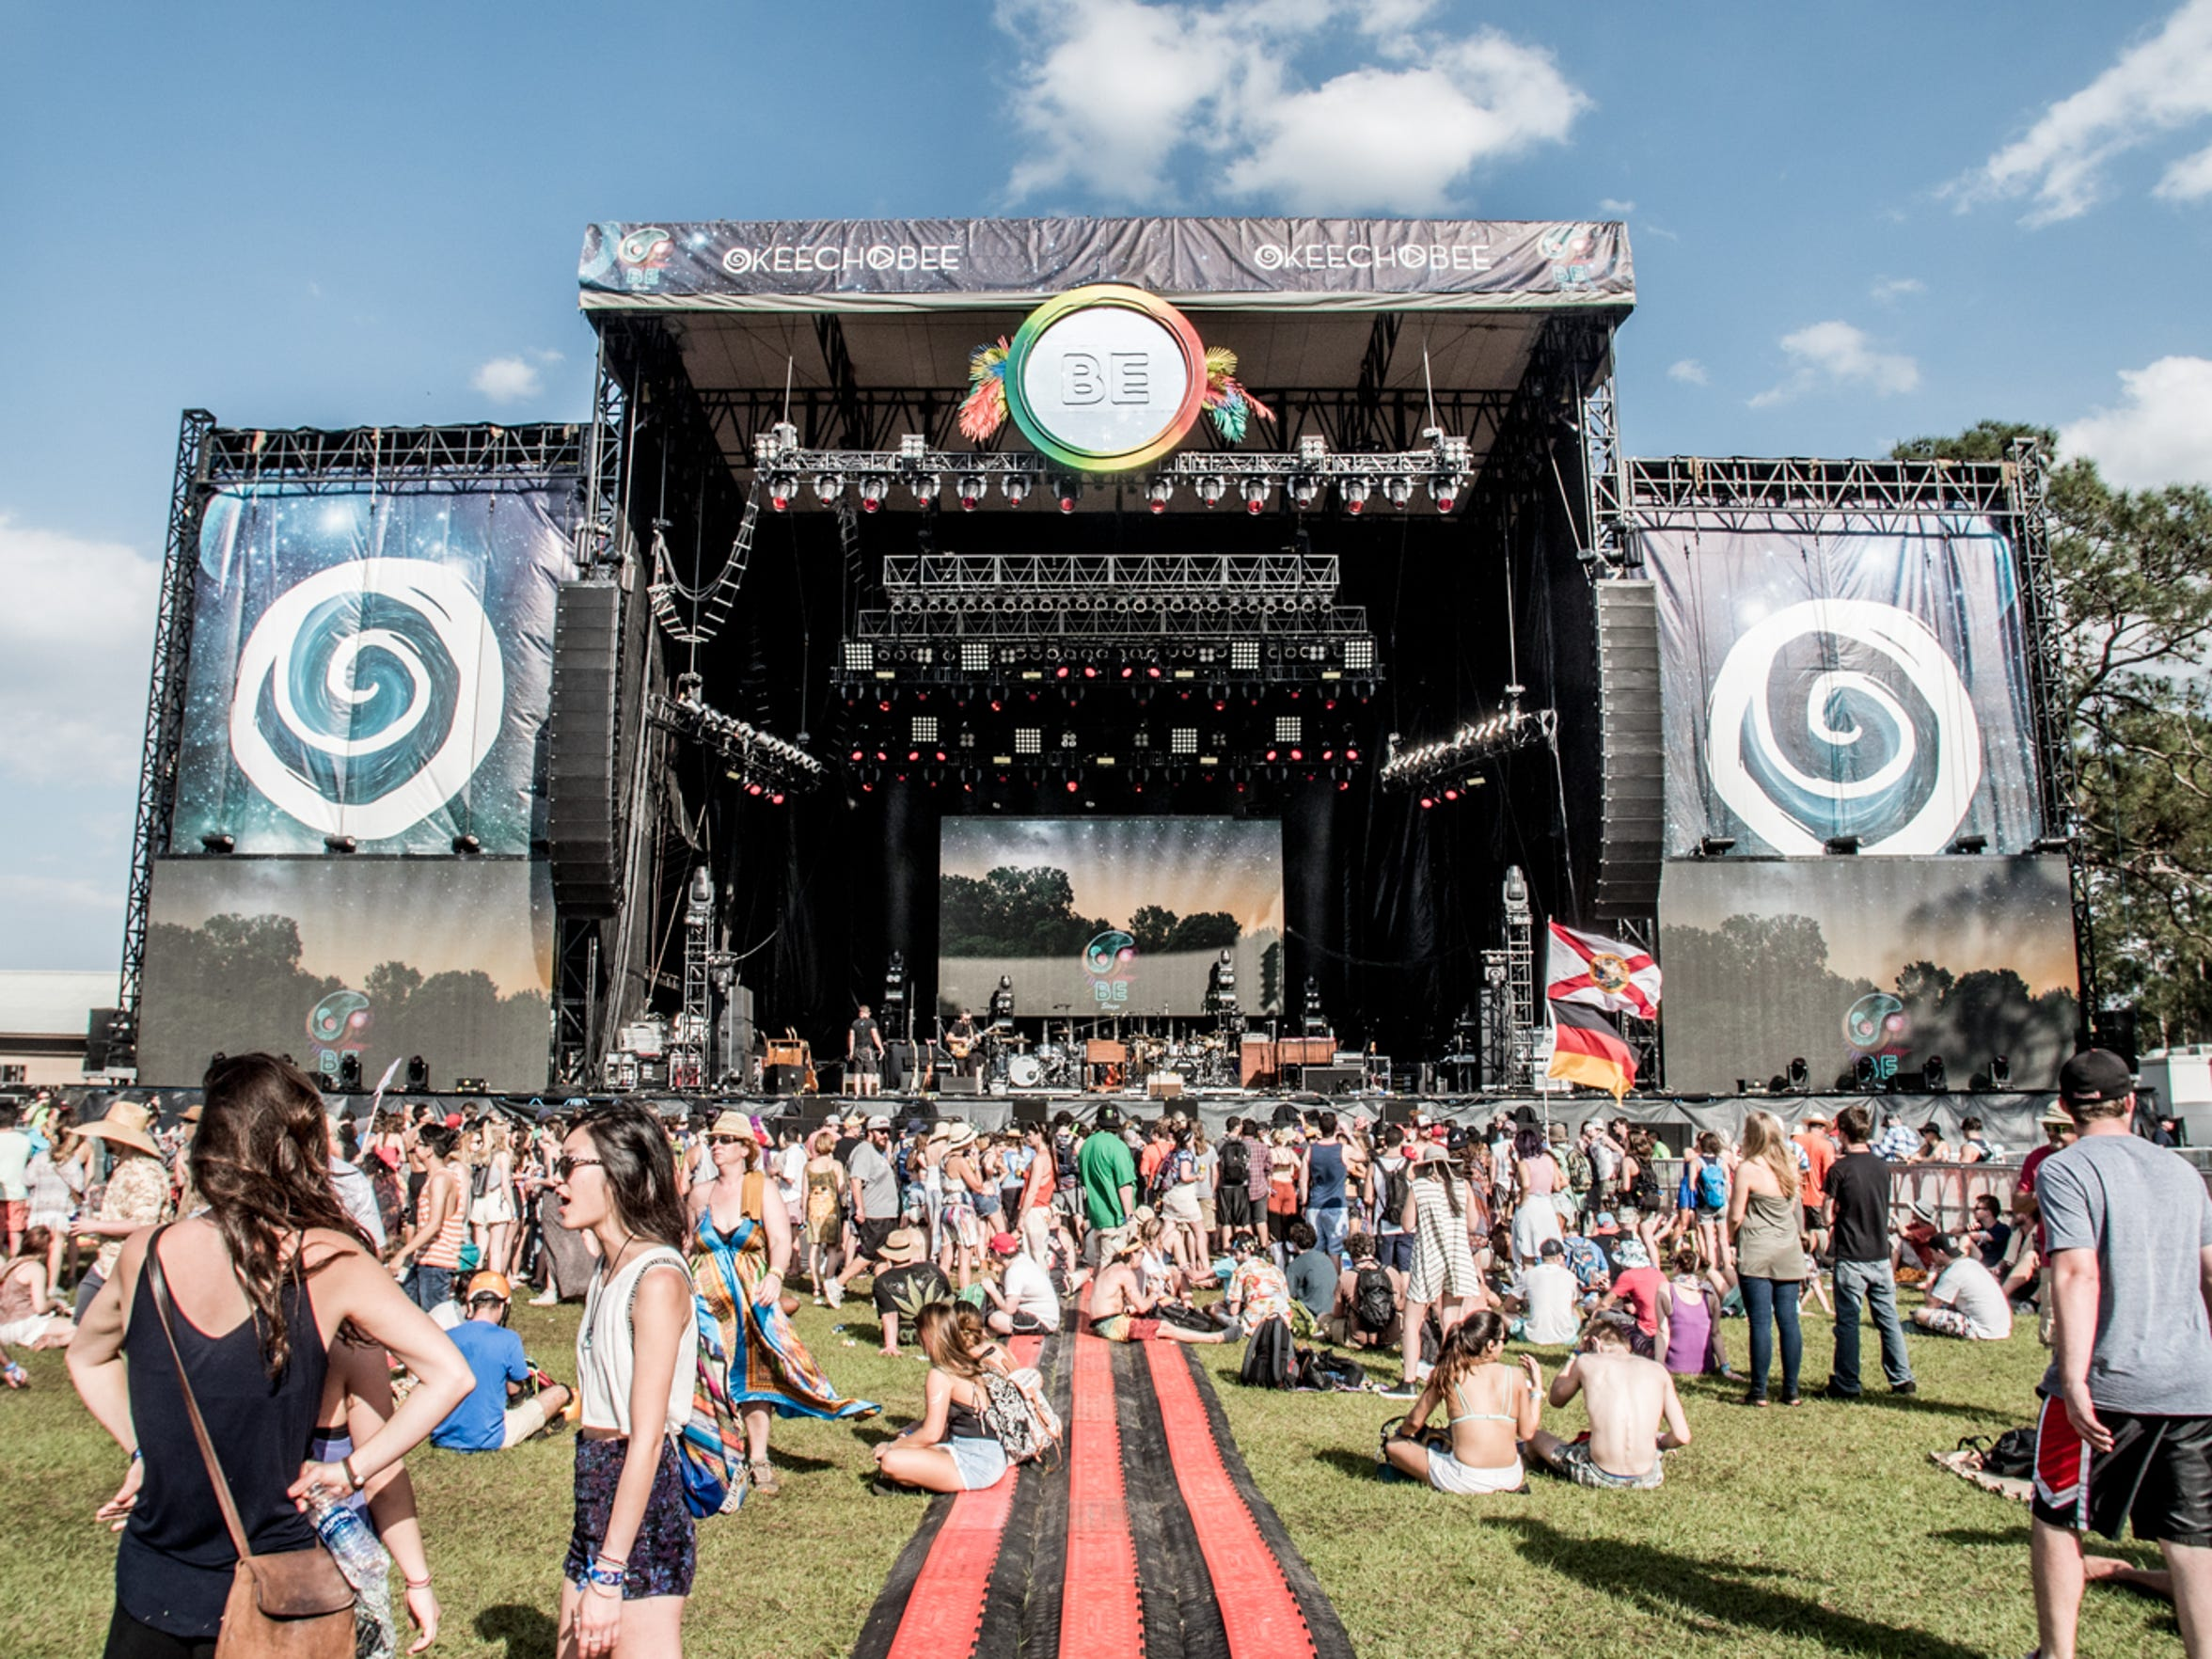 Okeechobee Music and Arts Festival served as Florida's first 24-hour music festival.